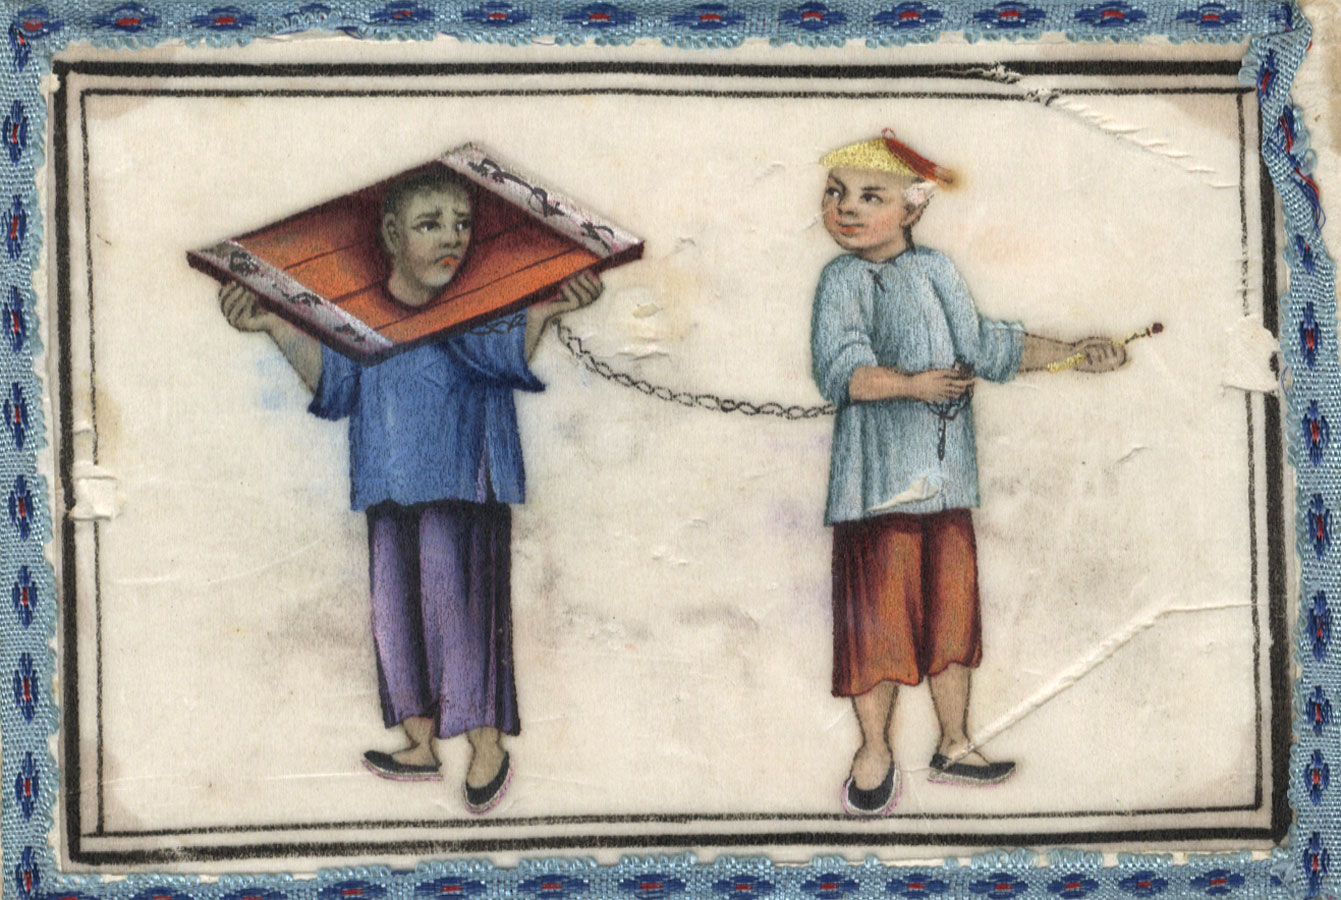 thesis on torture Check out our top free essays on medieval torture to help you write your own essay.